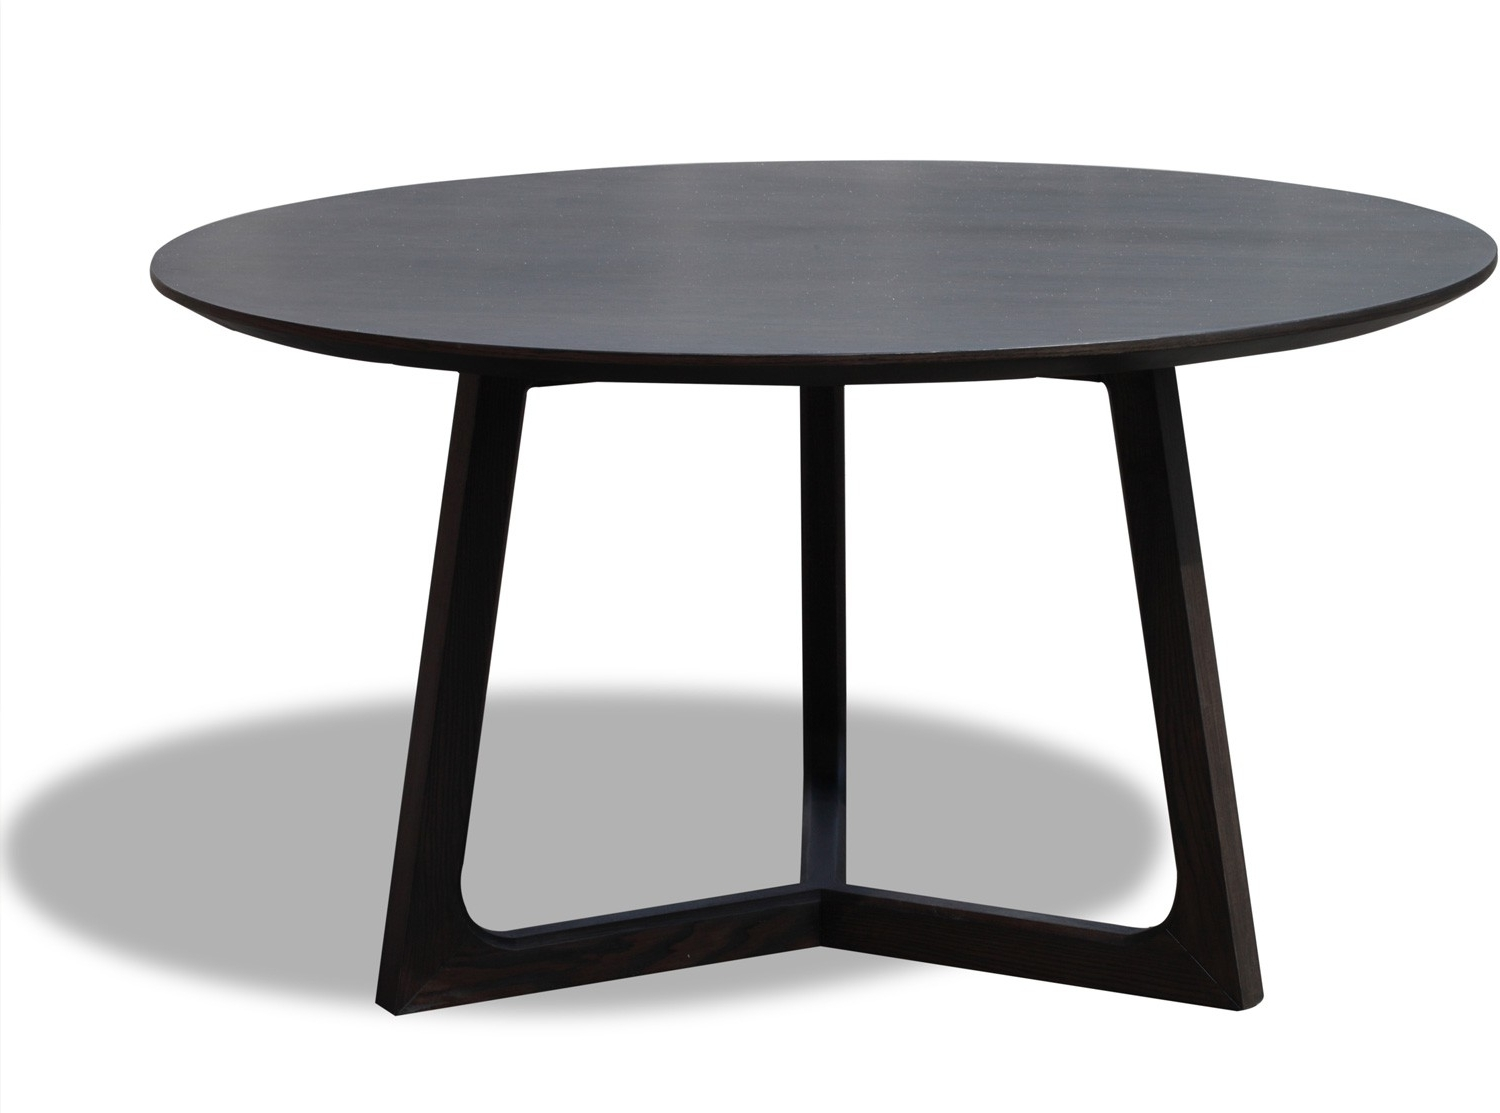 Black Circular Dining Tables Regarding Well Liked Significance Of Black Round Dining Tables – Home Decor Ideas (View 2 of 25)